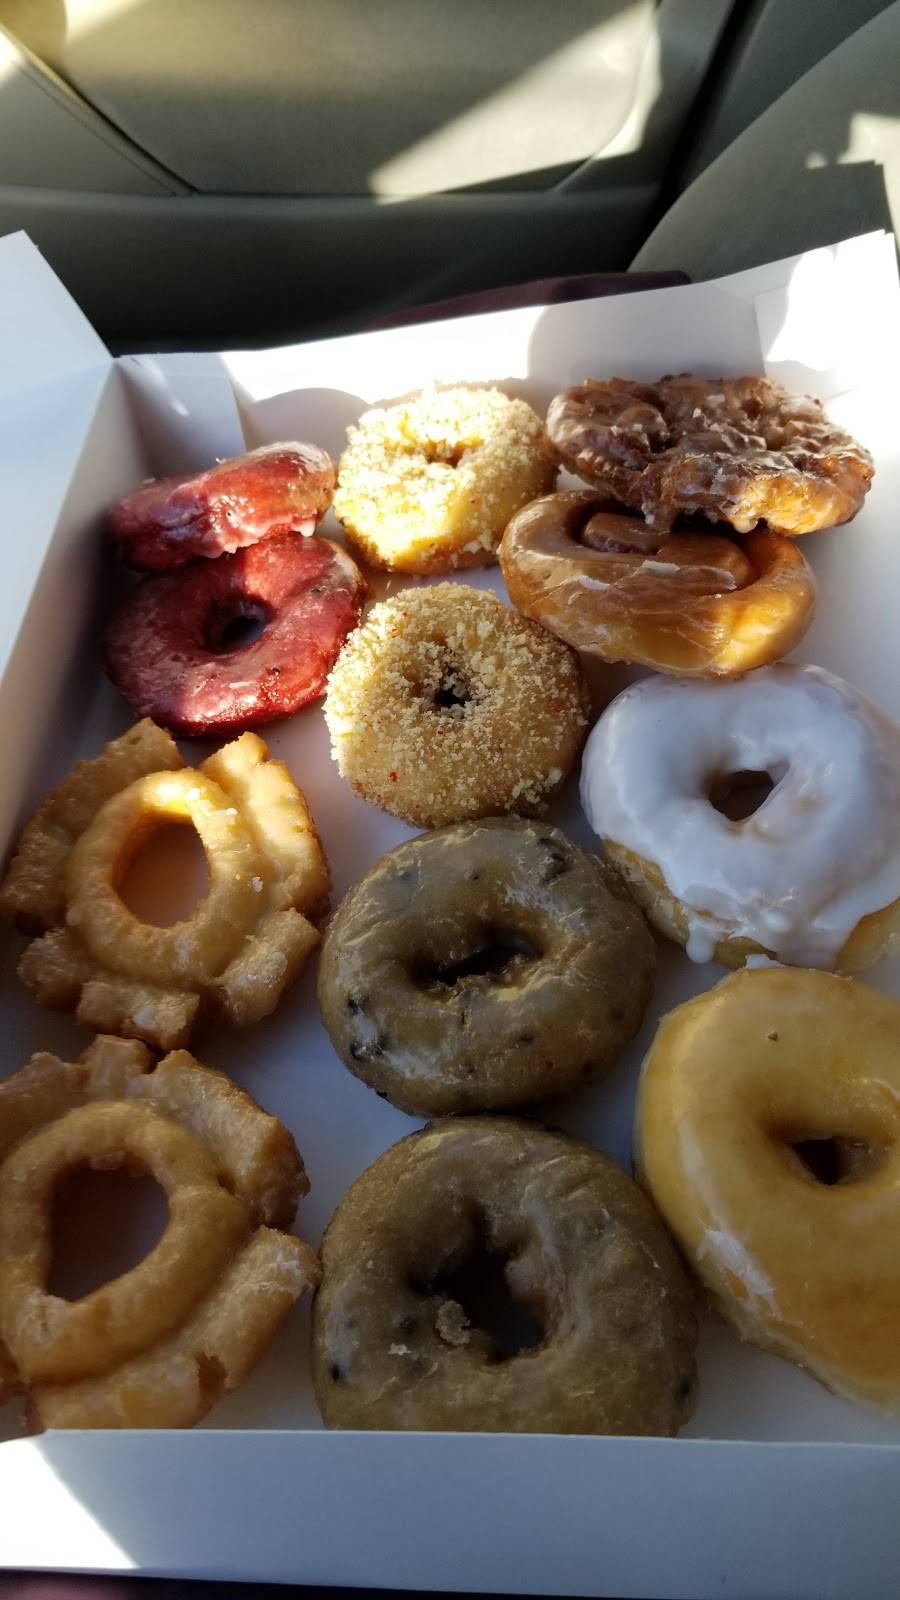 Fort Worth Donuts - bakery  | Photo 6 of 7 | Address: 1612 South Fwy, Fort Worth, TX 76104, USA | Phone: (817) 922-9492